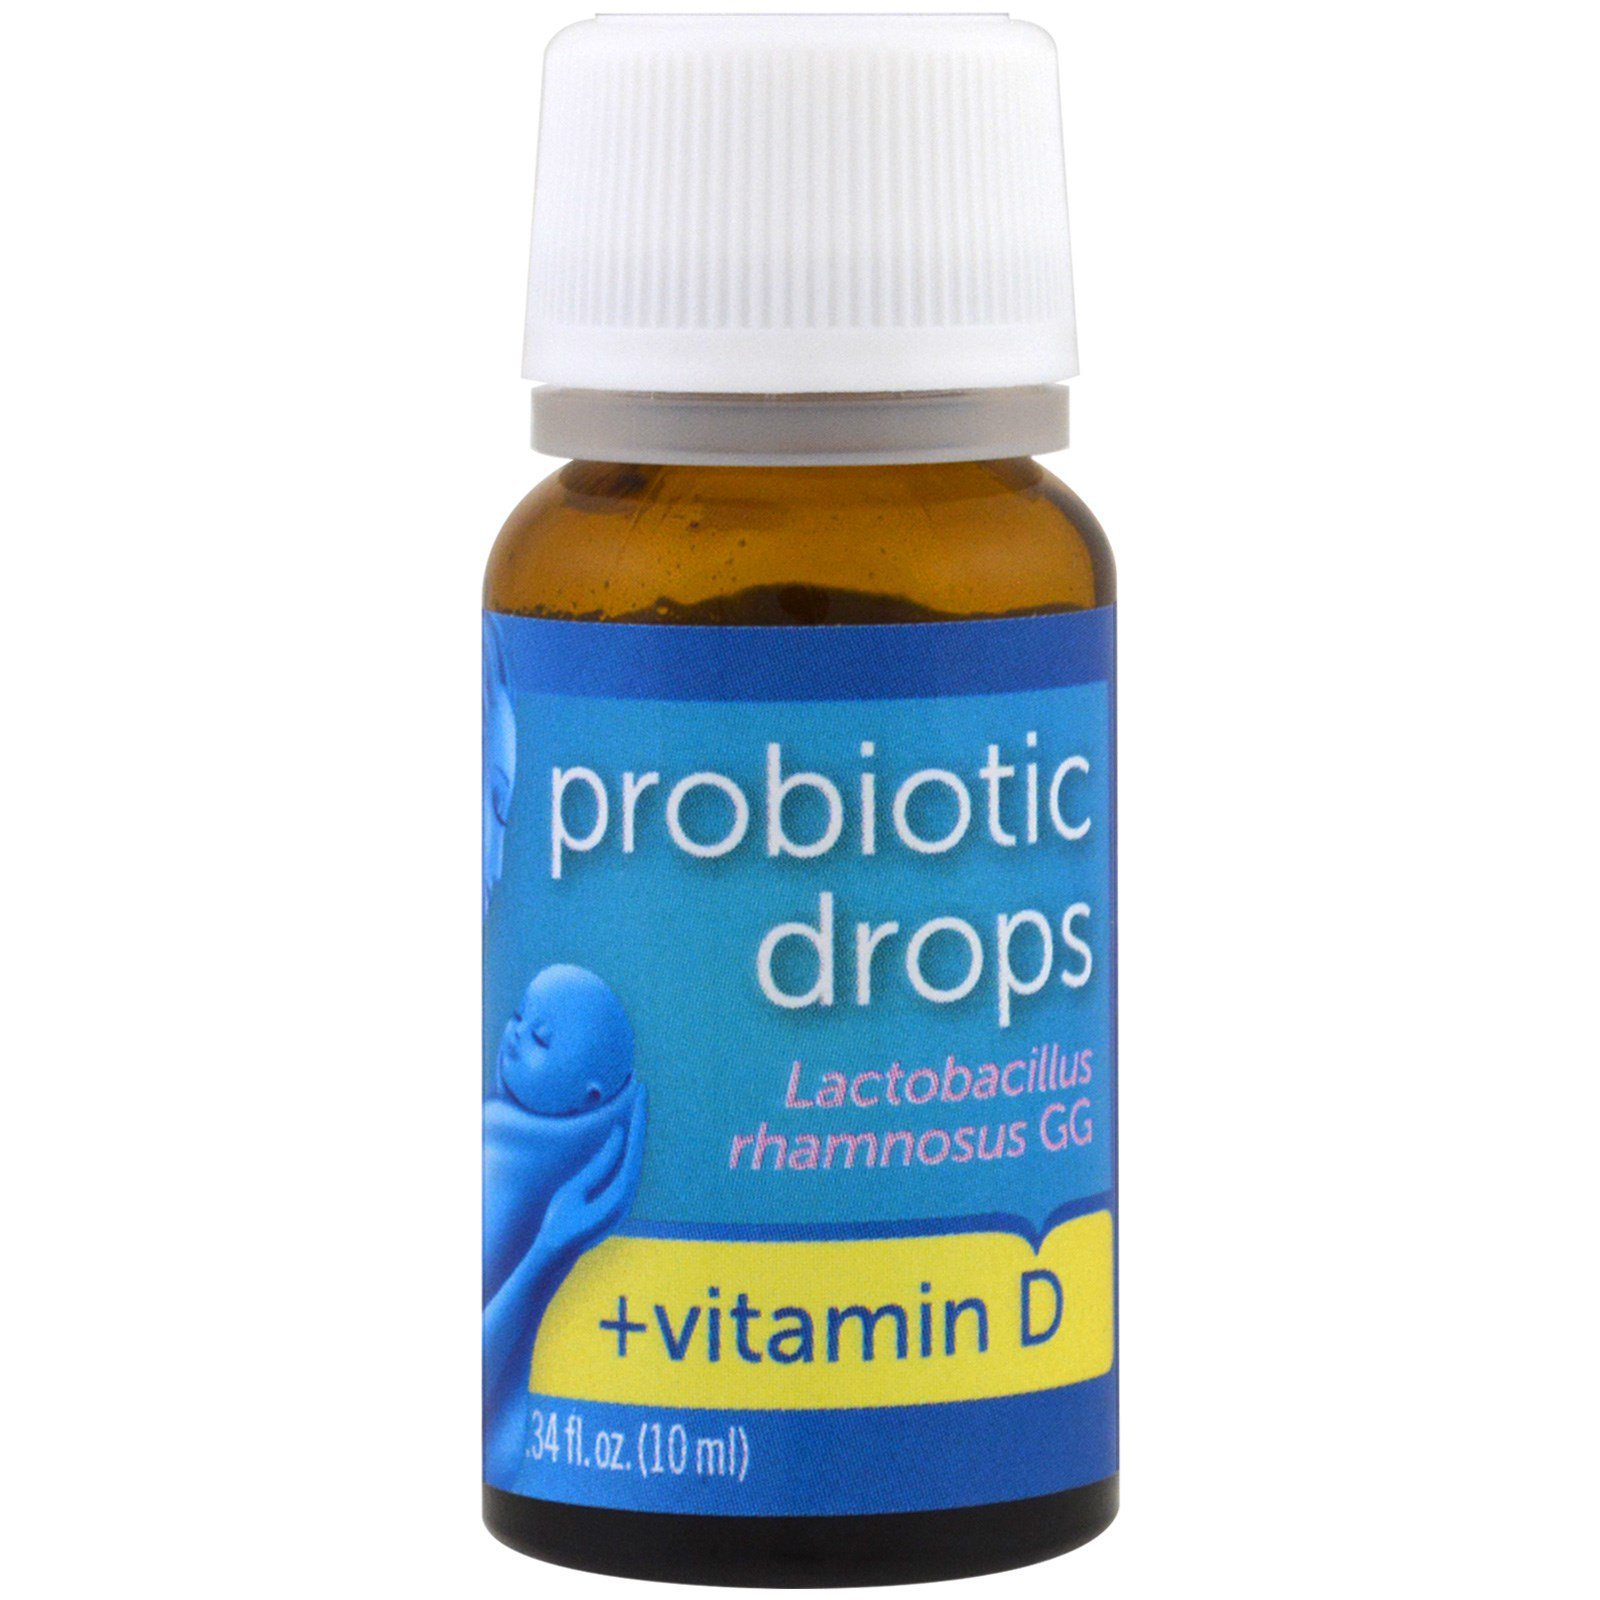 Probiotic drops for toddlers